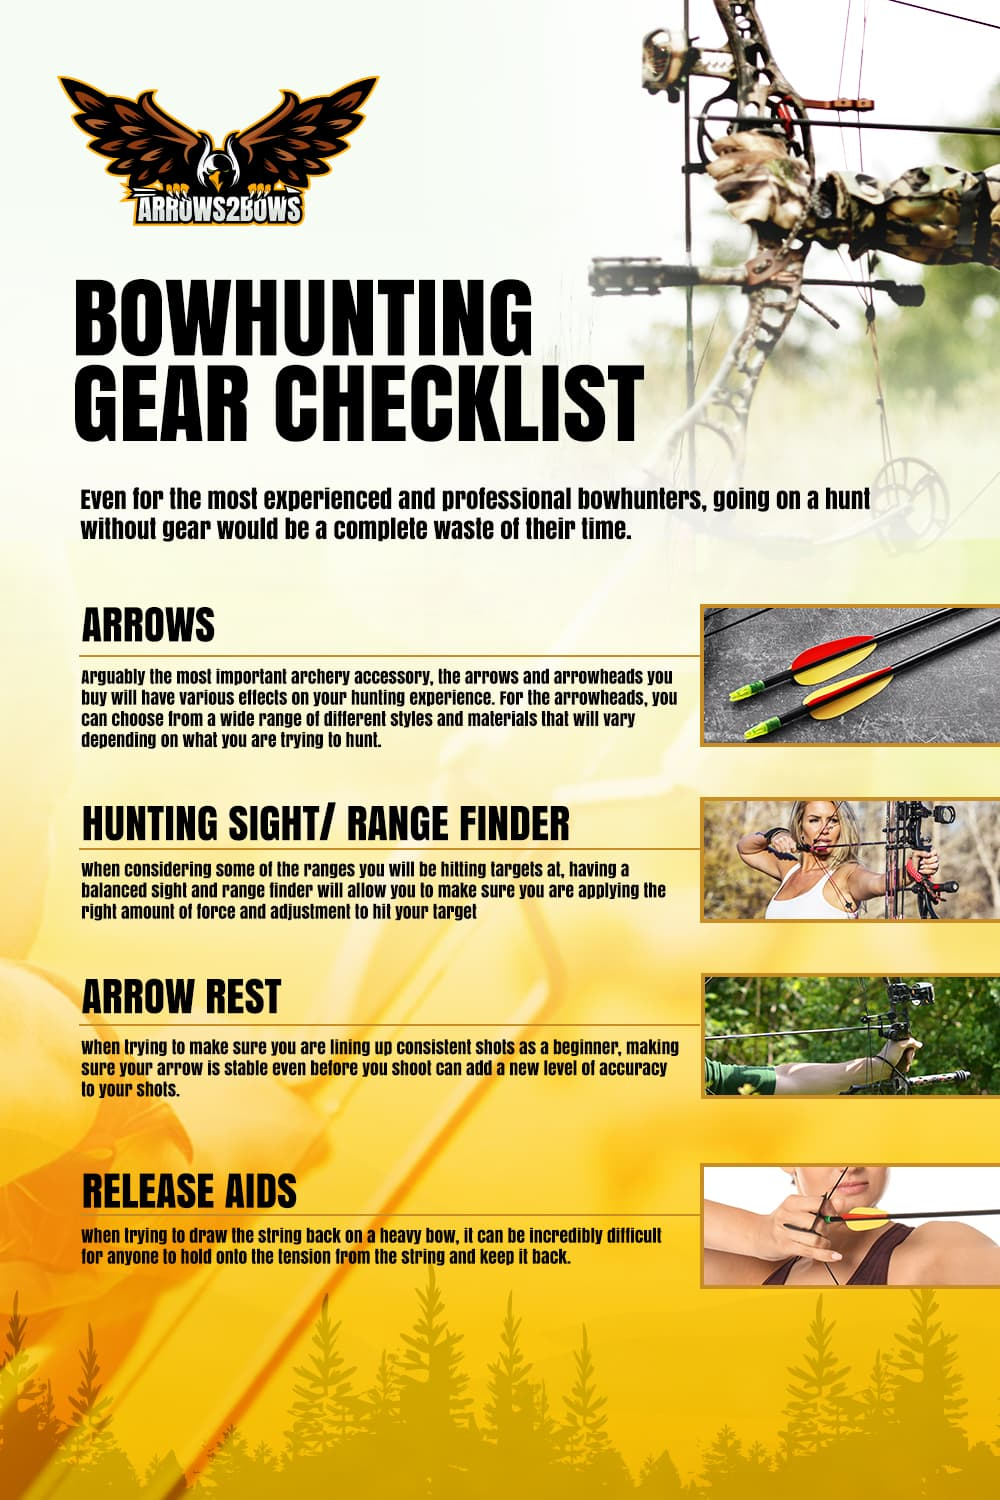 Bowhunting Gear Checklist - picture 1